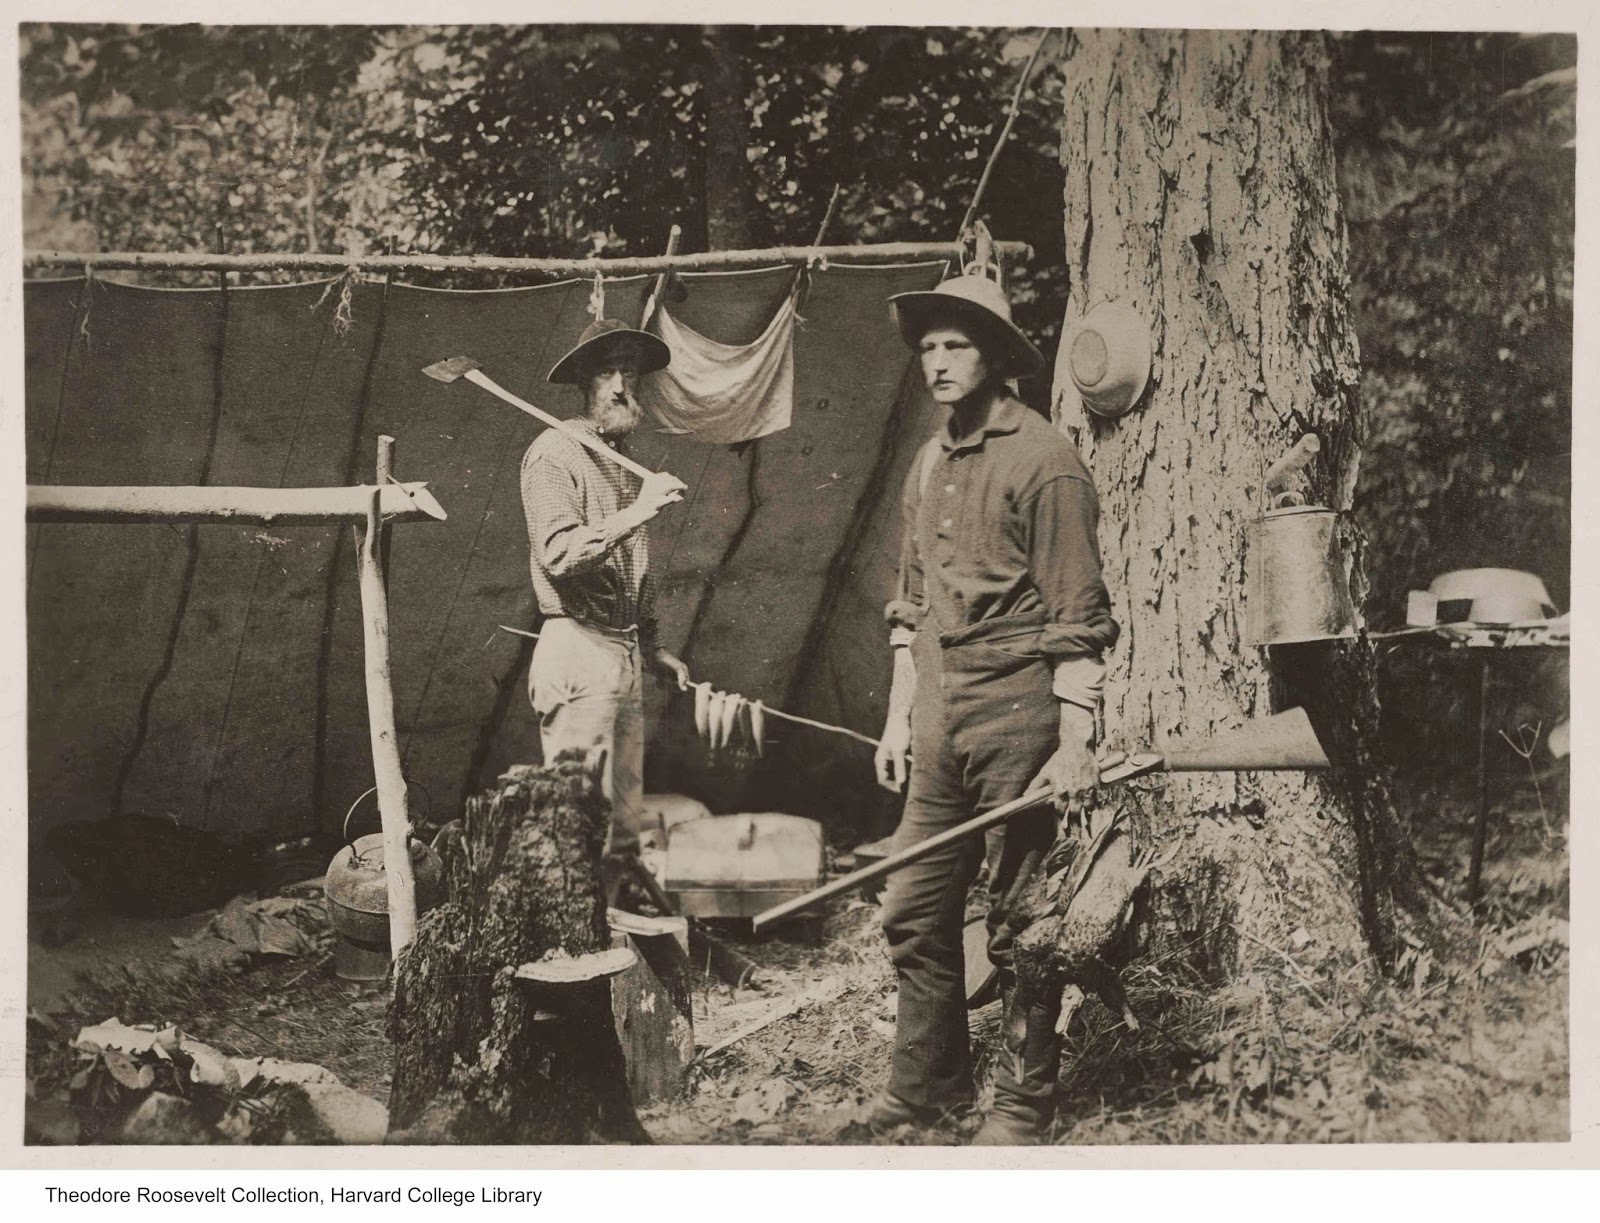 narcissus renovation project theodore roosevelt first  at camp on pratt cove mattawamkeag lake island falls maine the file list ca 1921 however wilmot died in 1891